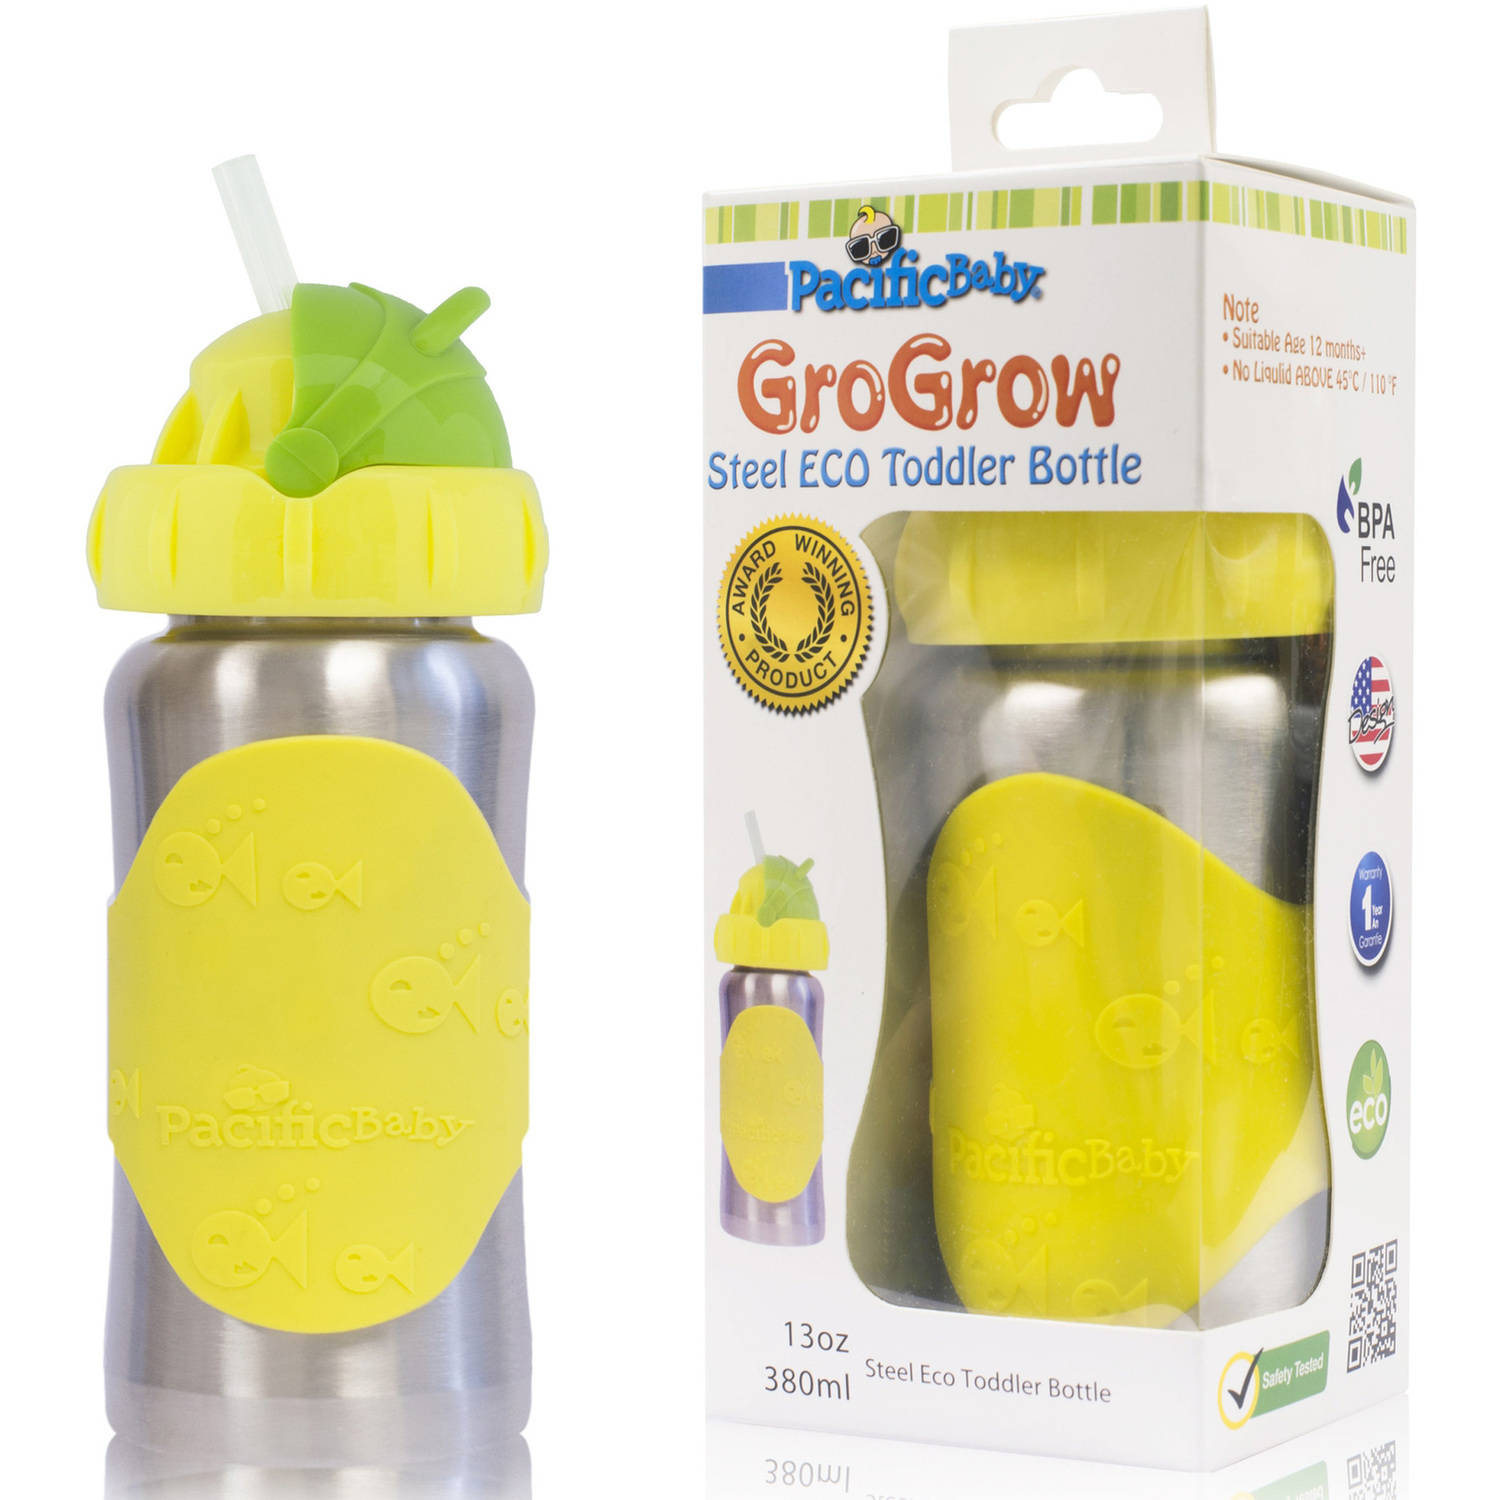 Pacific Baby GroGrow Eco Toddler Bottle Sippy Cup - Stainless Steel